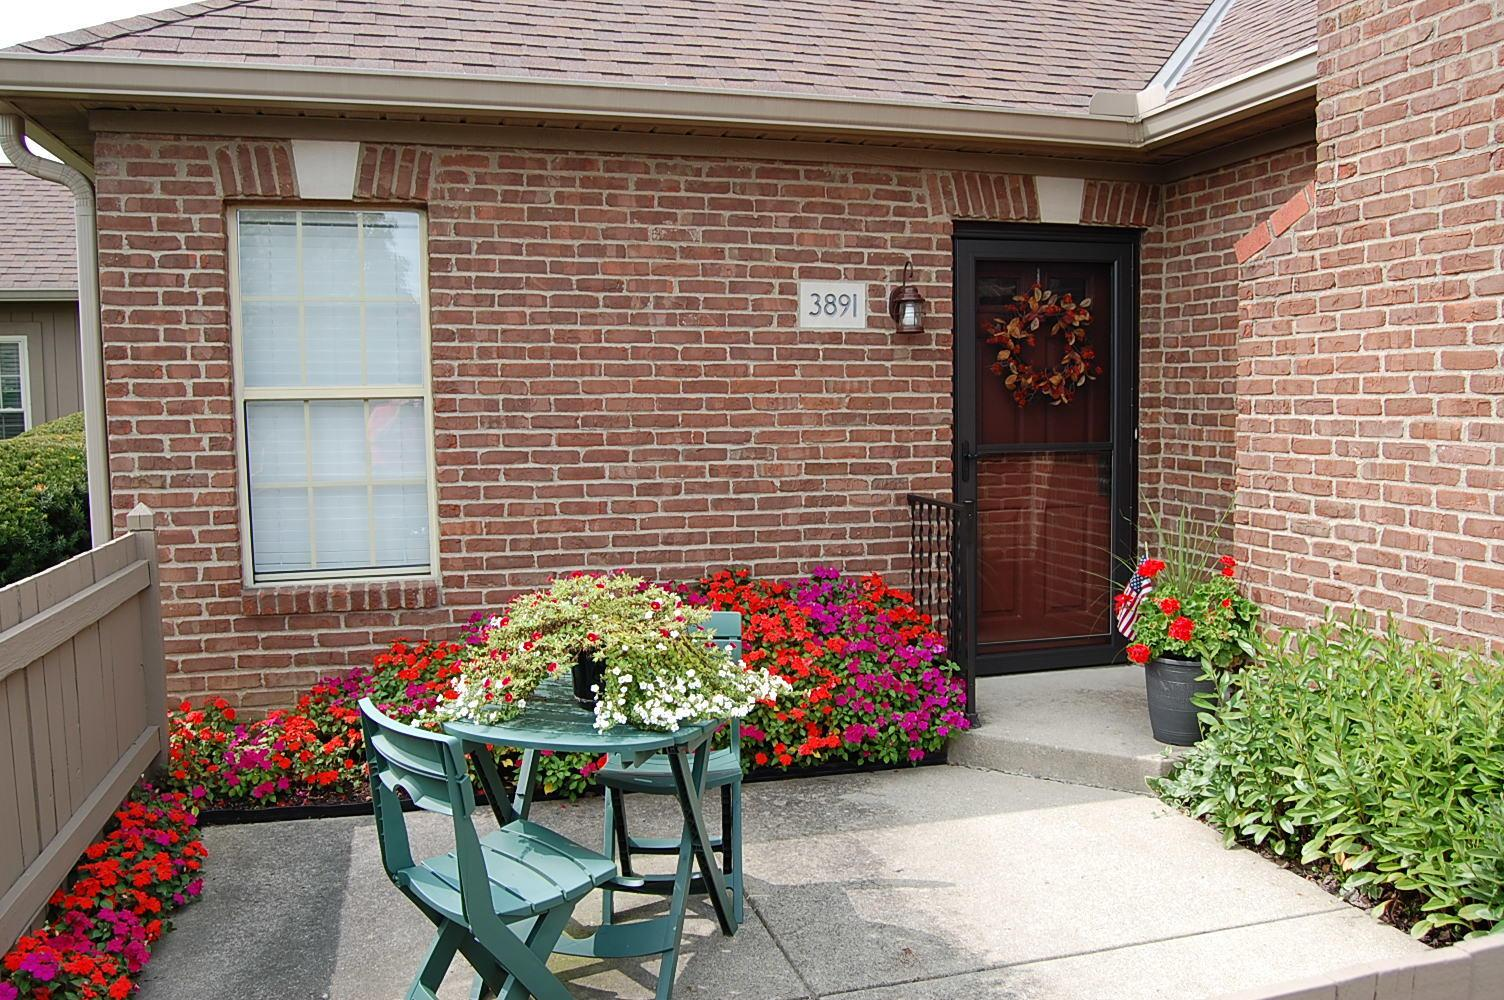 3891 Ivygate Place, Dublin, Ohio 43016, 2 Bedrooms Bedrooms, ,2 BathroomsBathrooms,Residential,For Sale,Ivygate,220039582